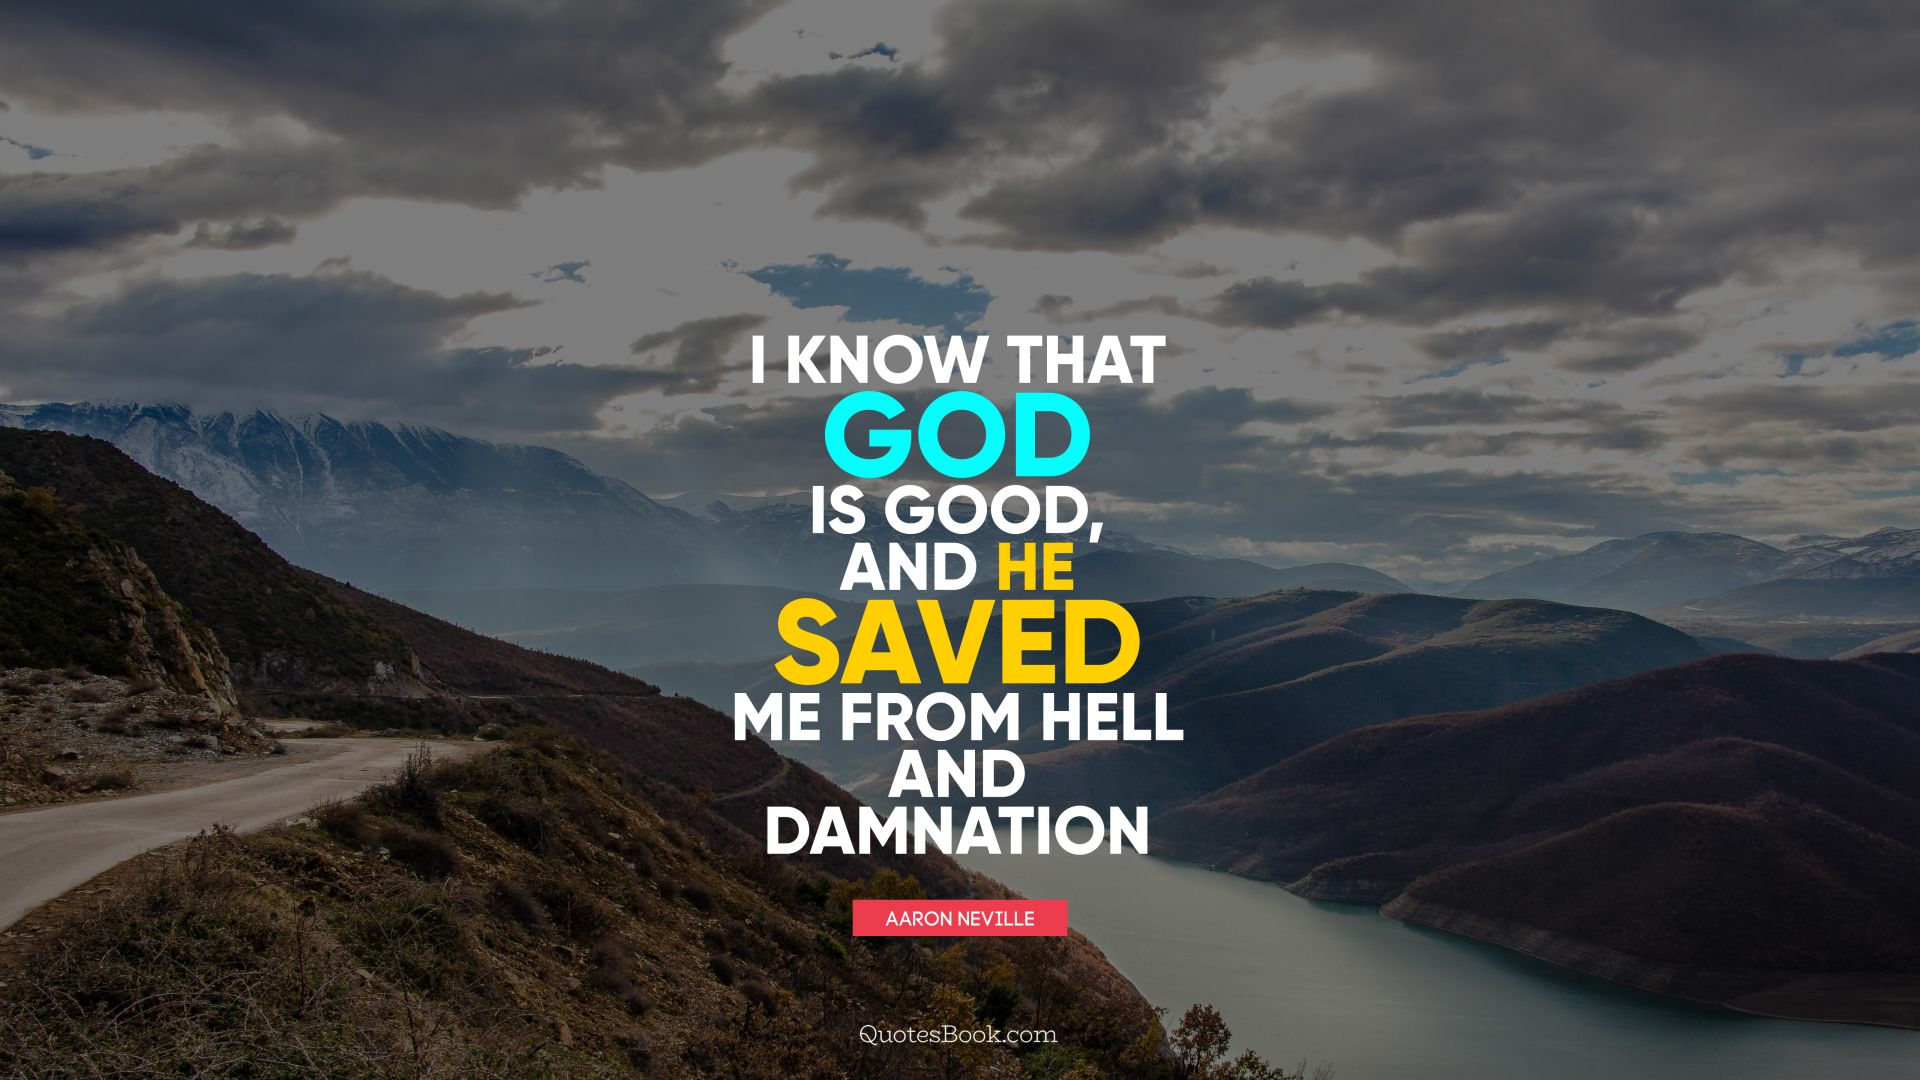 I know that God is good, and he saved me from hell and damnation. - Quote by Aaron Neville